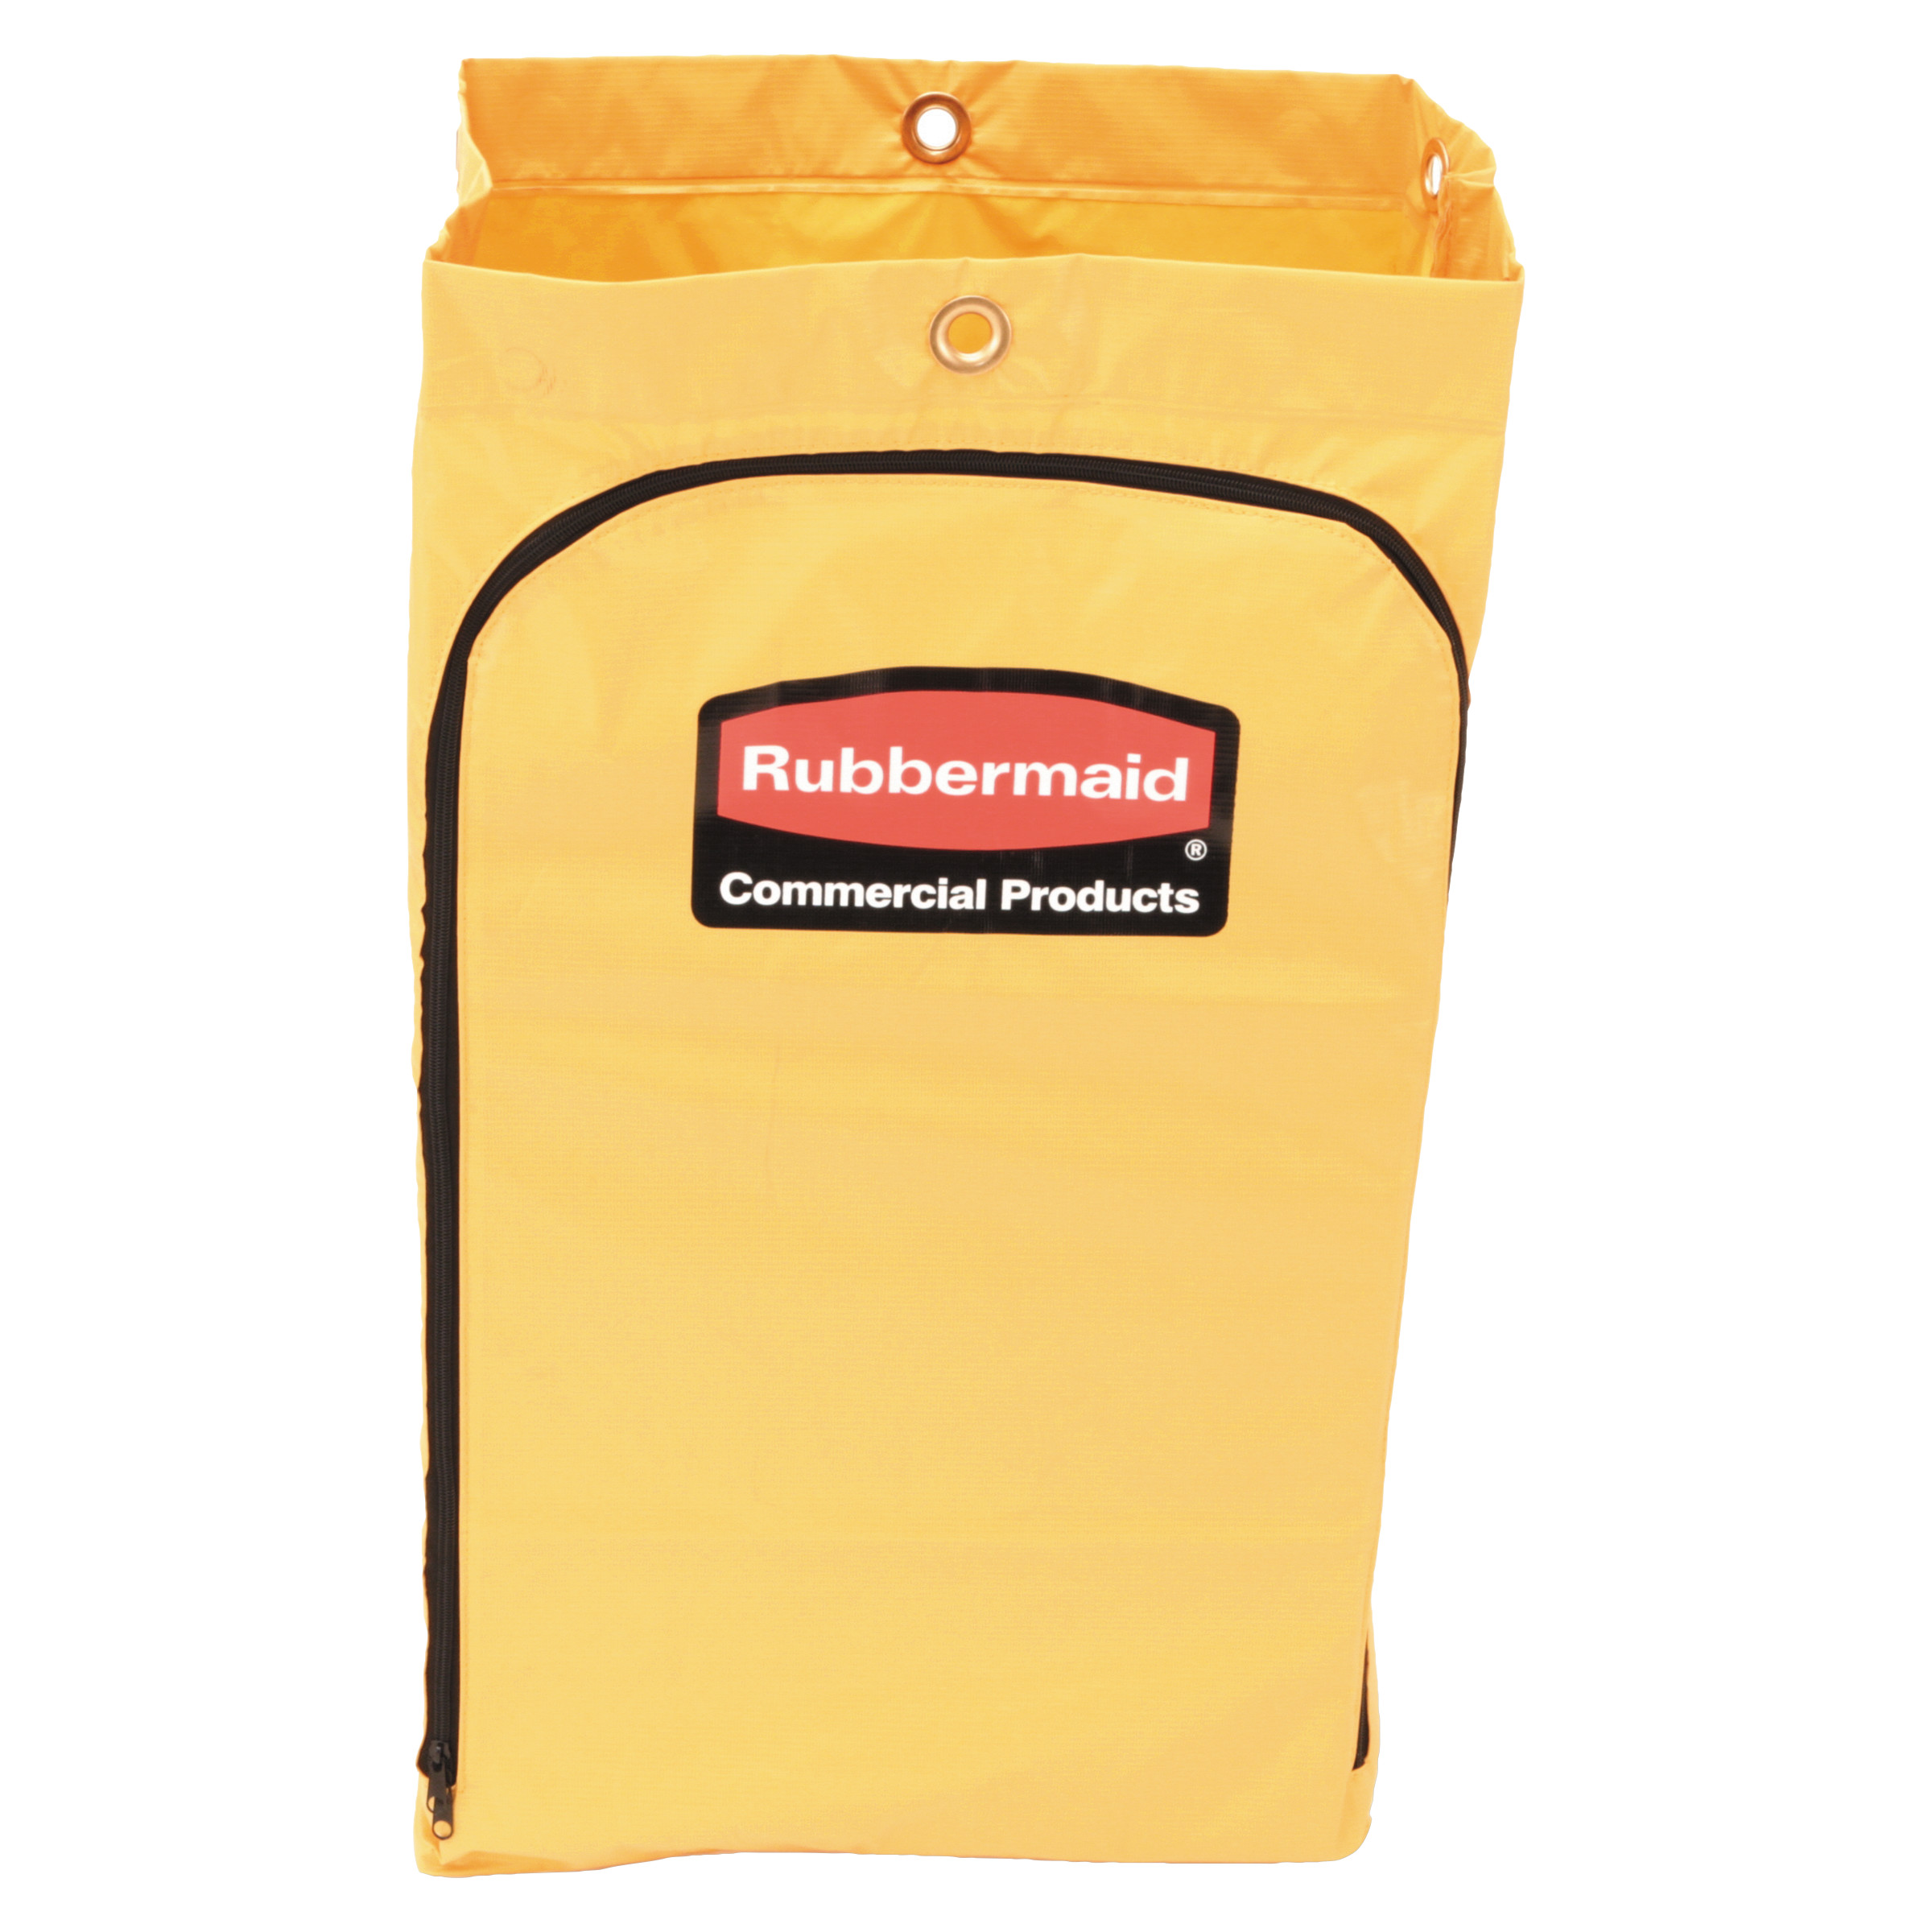 Rubbermaid Commercial Zippered Vinyl Cleaning Cart Bag, 24gal, 17 1/4w x 10 1/2d x 30 1/2h, Yellow